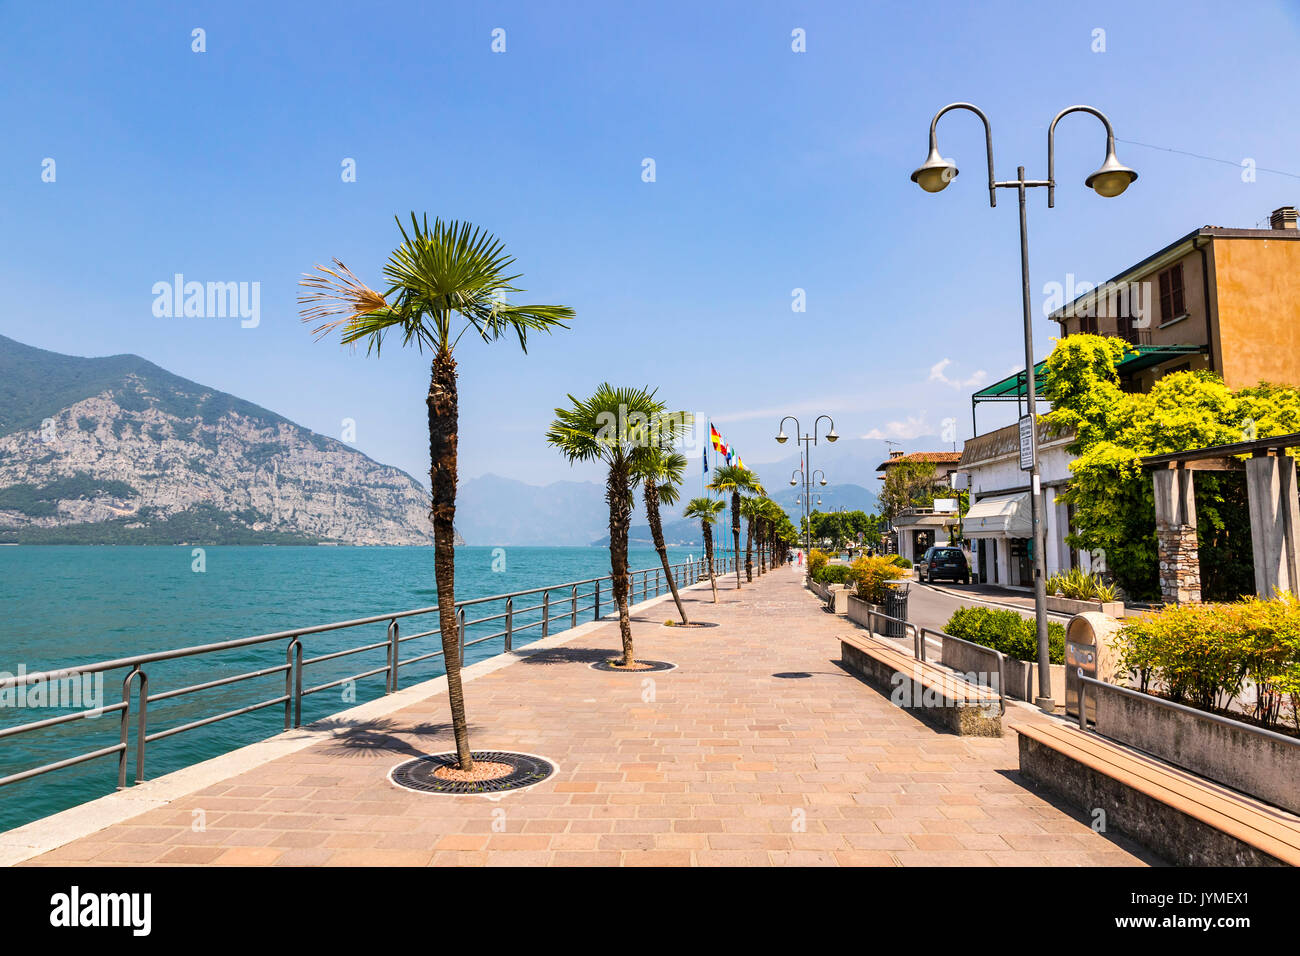 Promenade street in Iseo city on Iseo lake, Lombardy, Italy. Famous Italian resort. Lake Iseo (or Lago d'Iseo) is the 4th largest lake in Lombardy - Stock Image